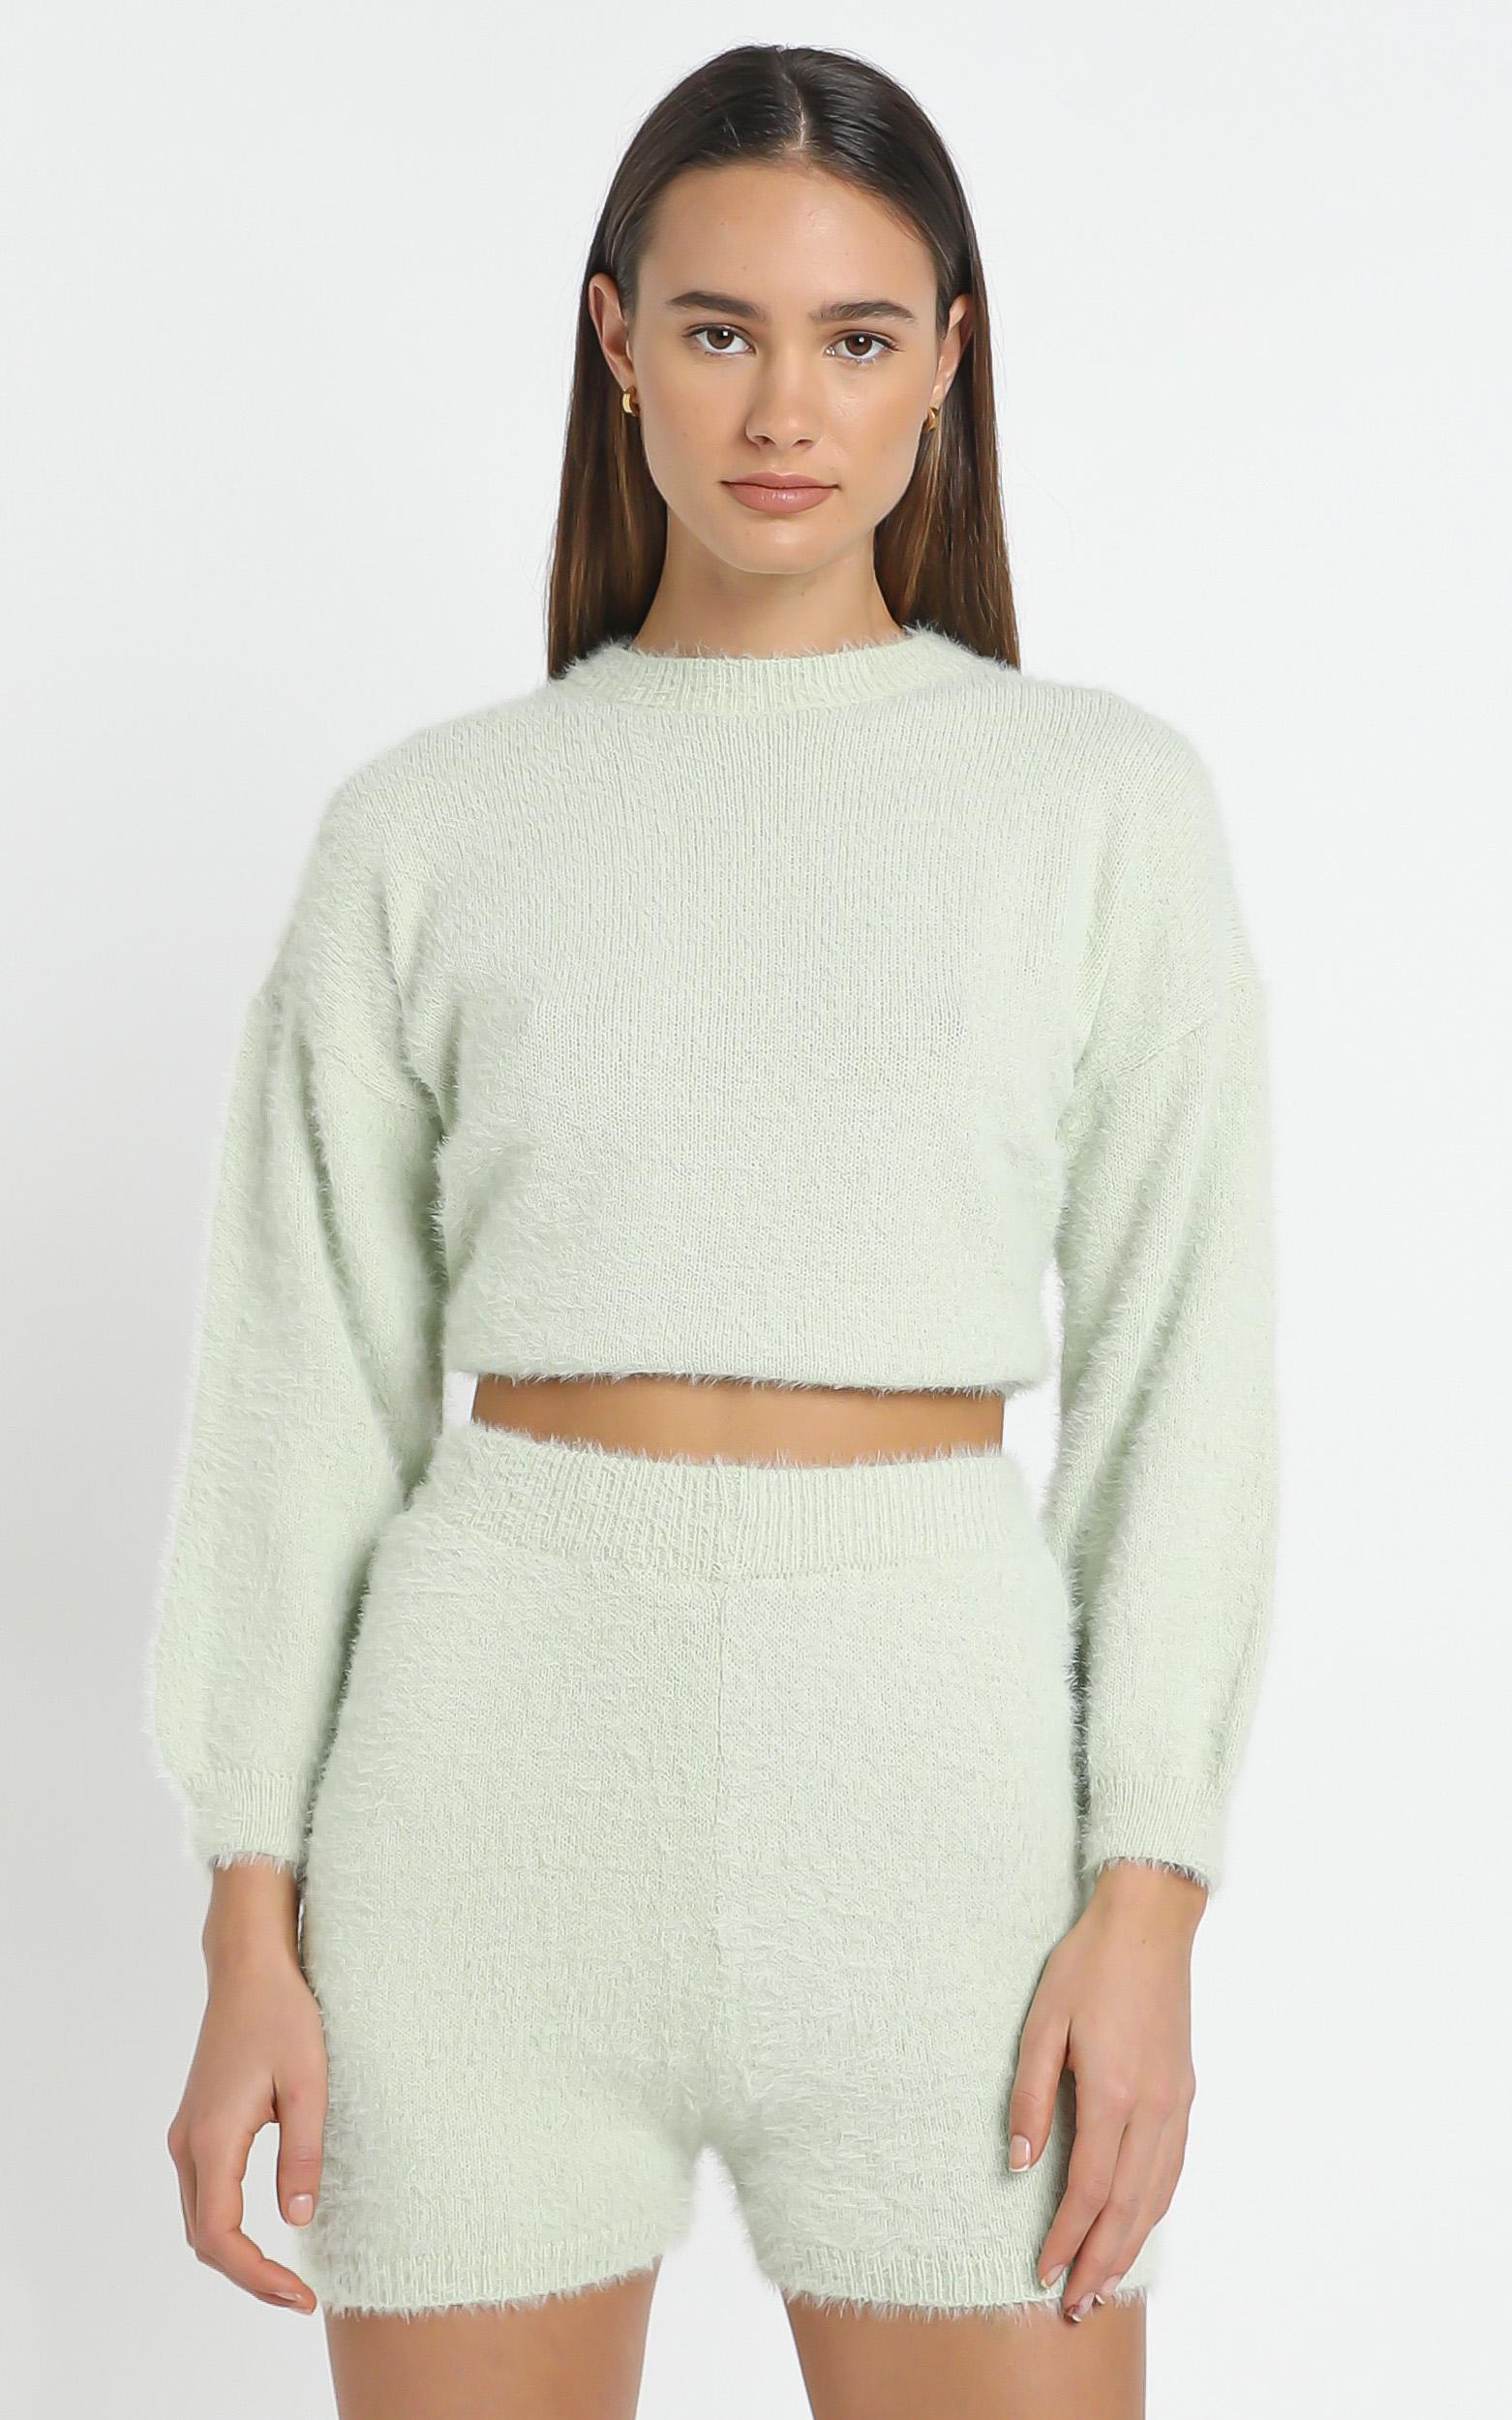 Loretta Fluffy Knit Two Piece Set in Sage - L/XL, Sage, hi-res image number null